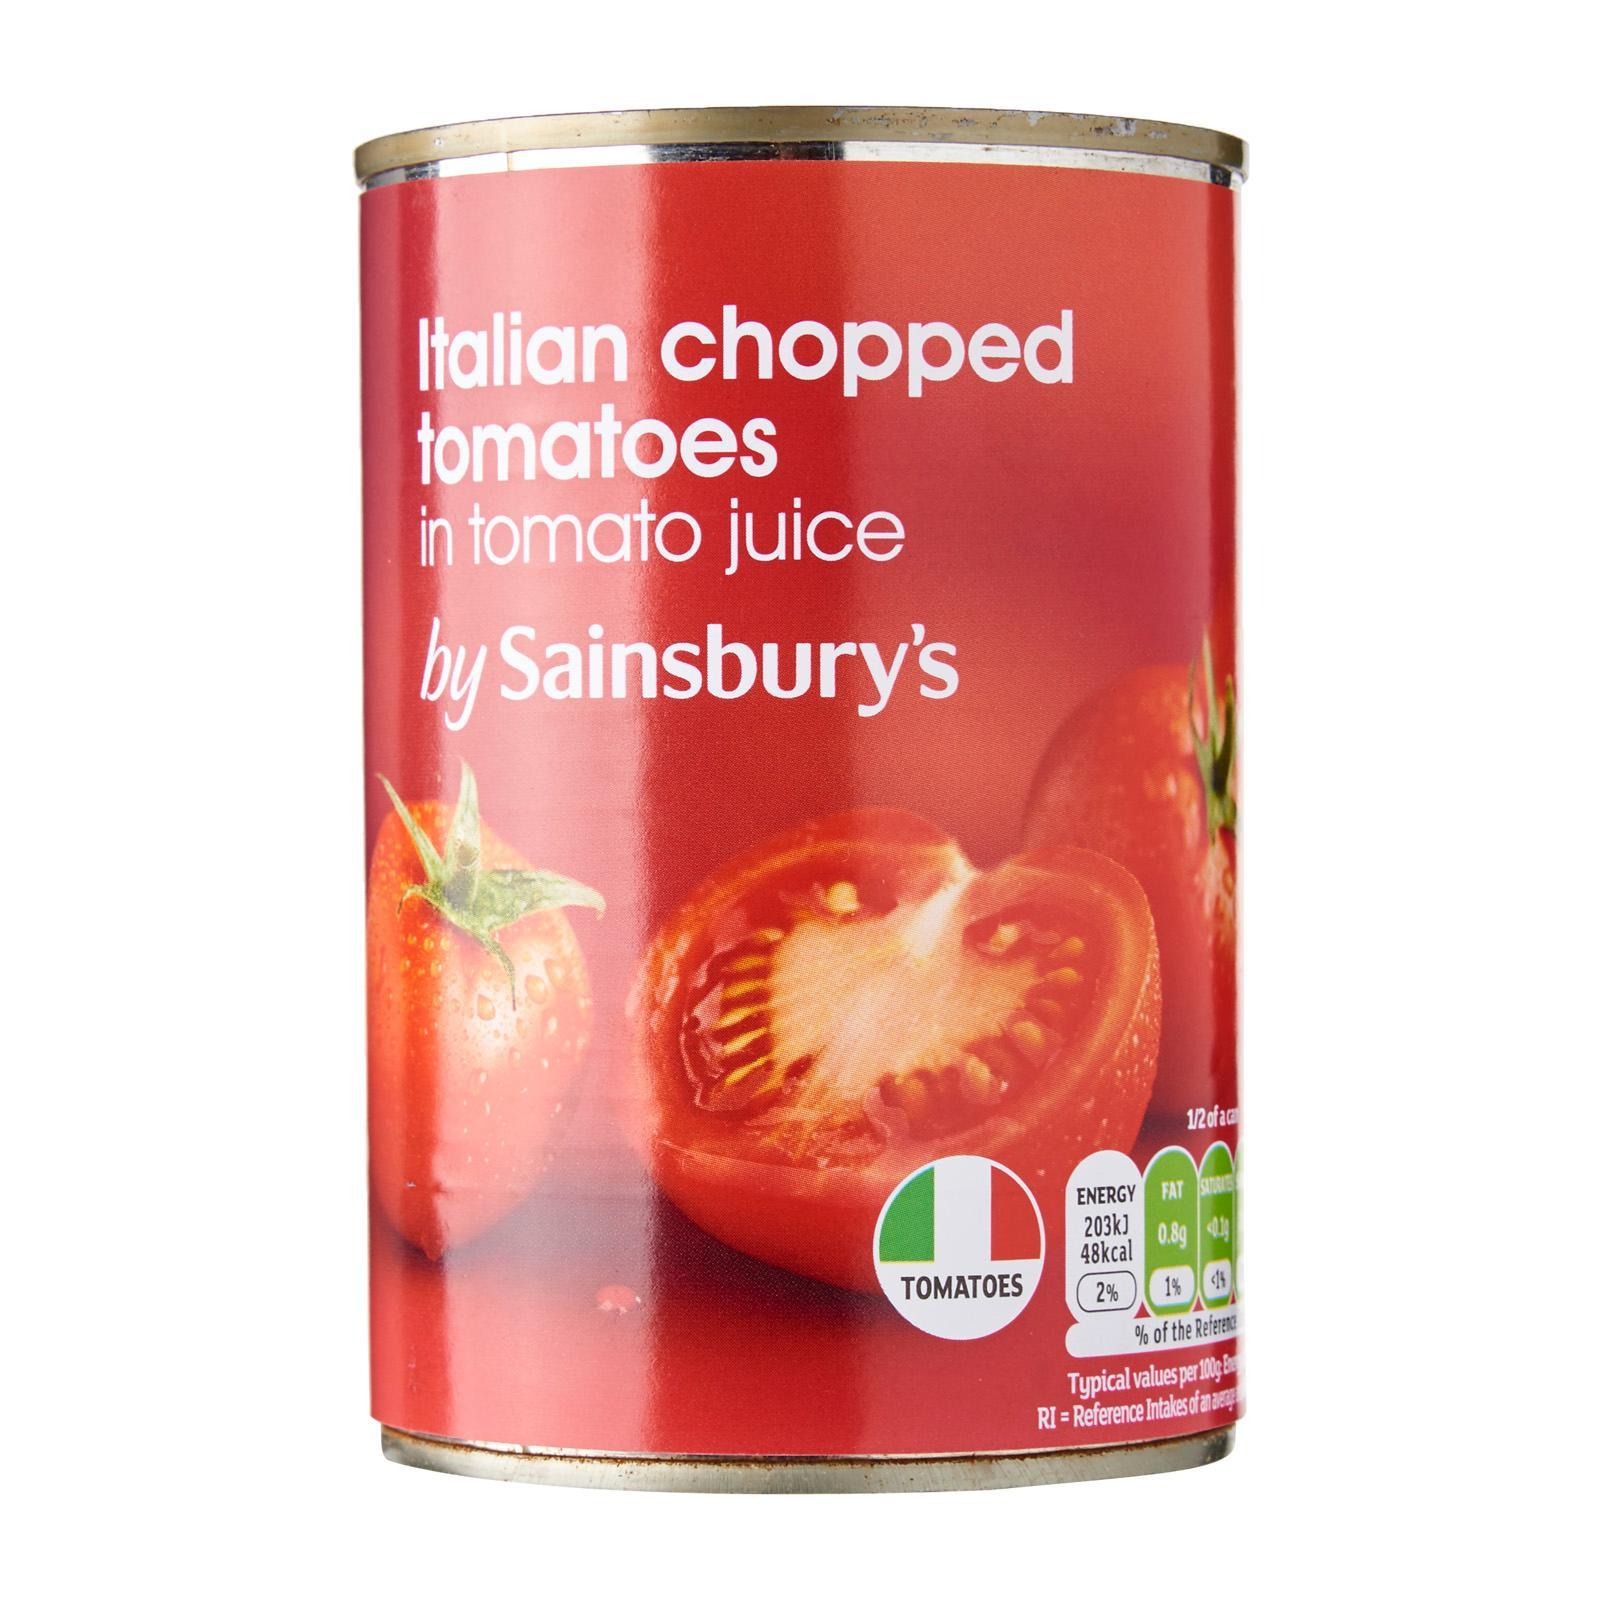 Sainsbury's Chopped Tomatoes In Tomato Juice Carton